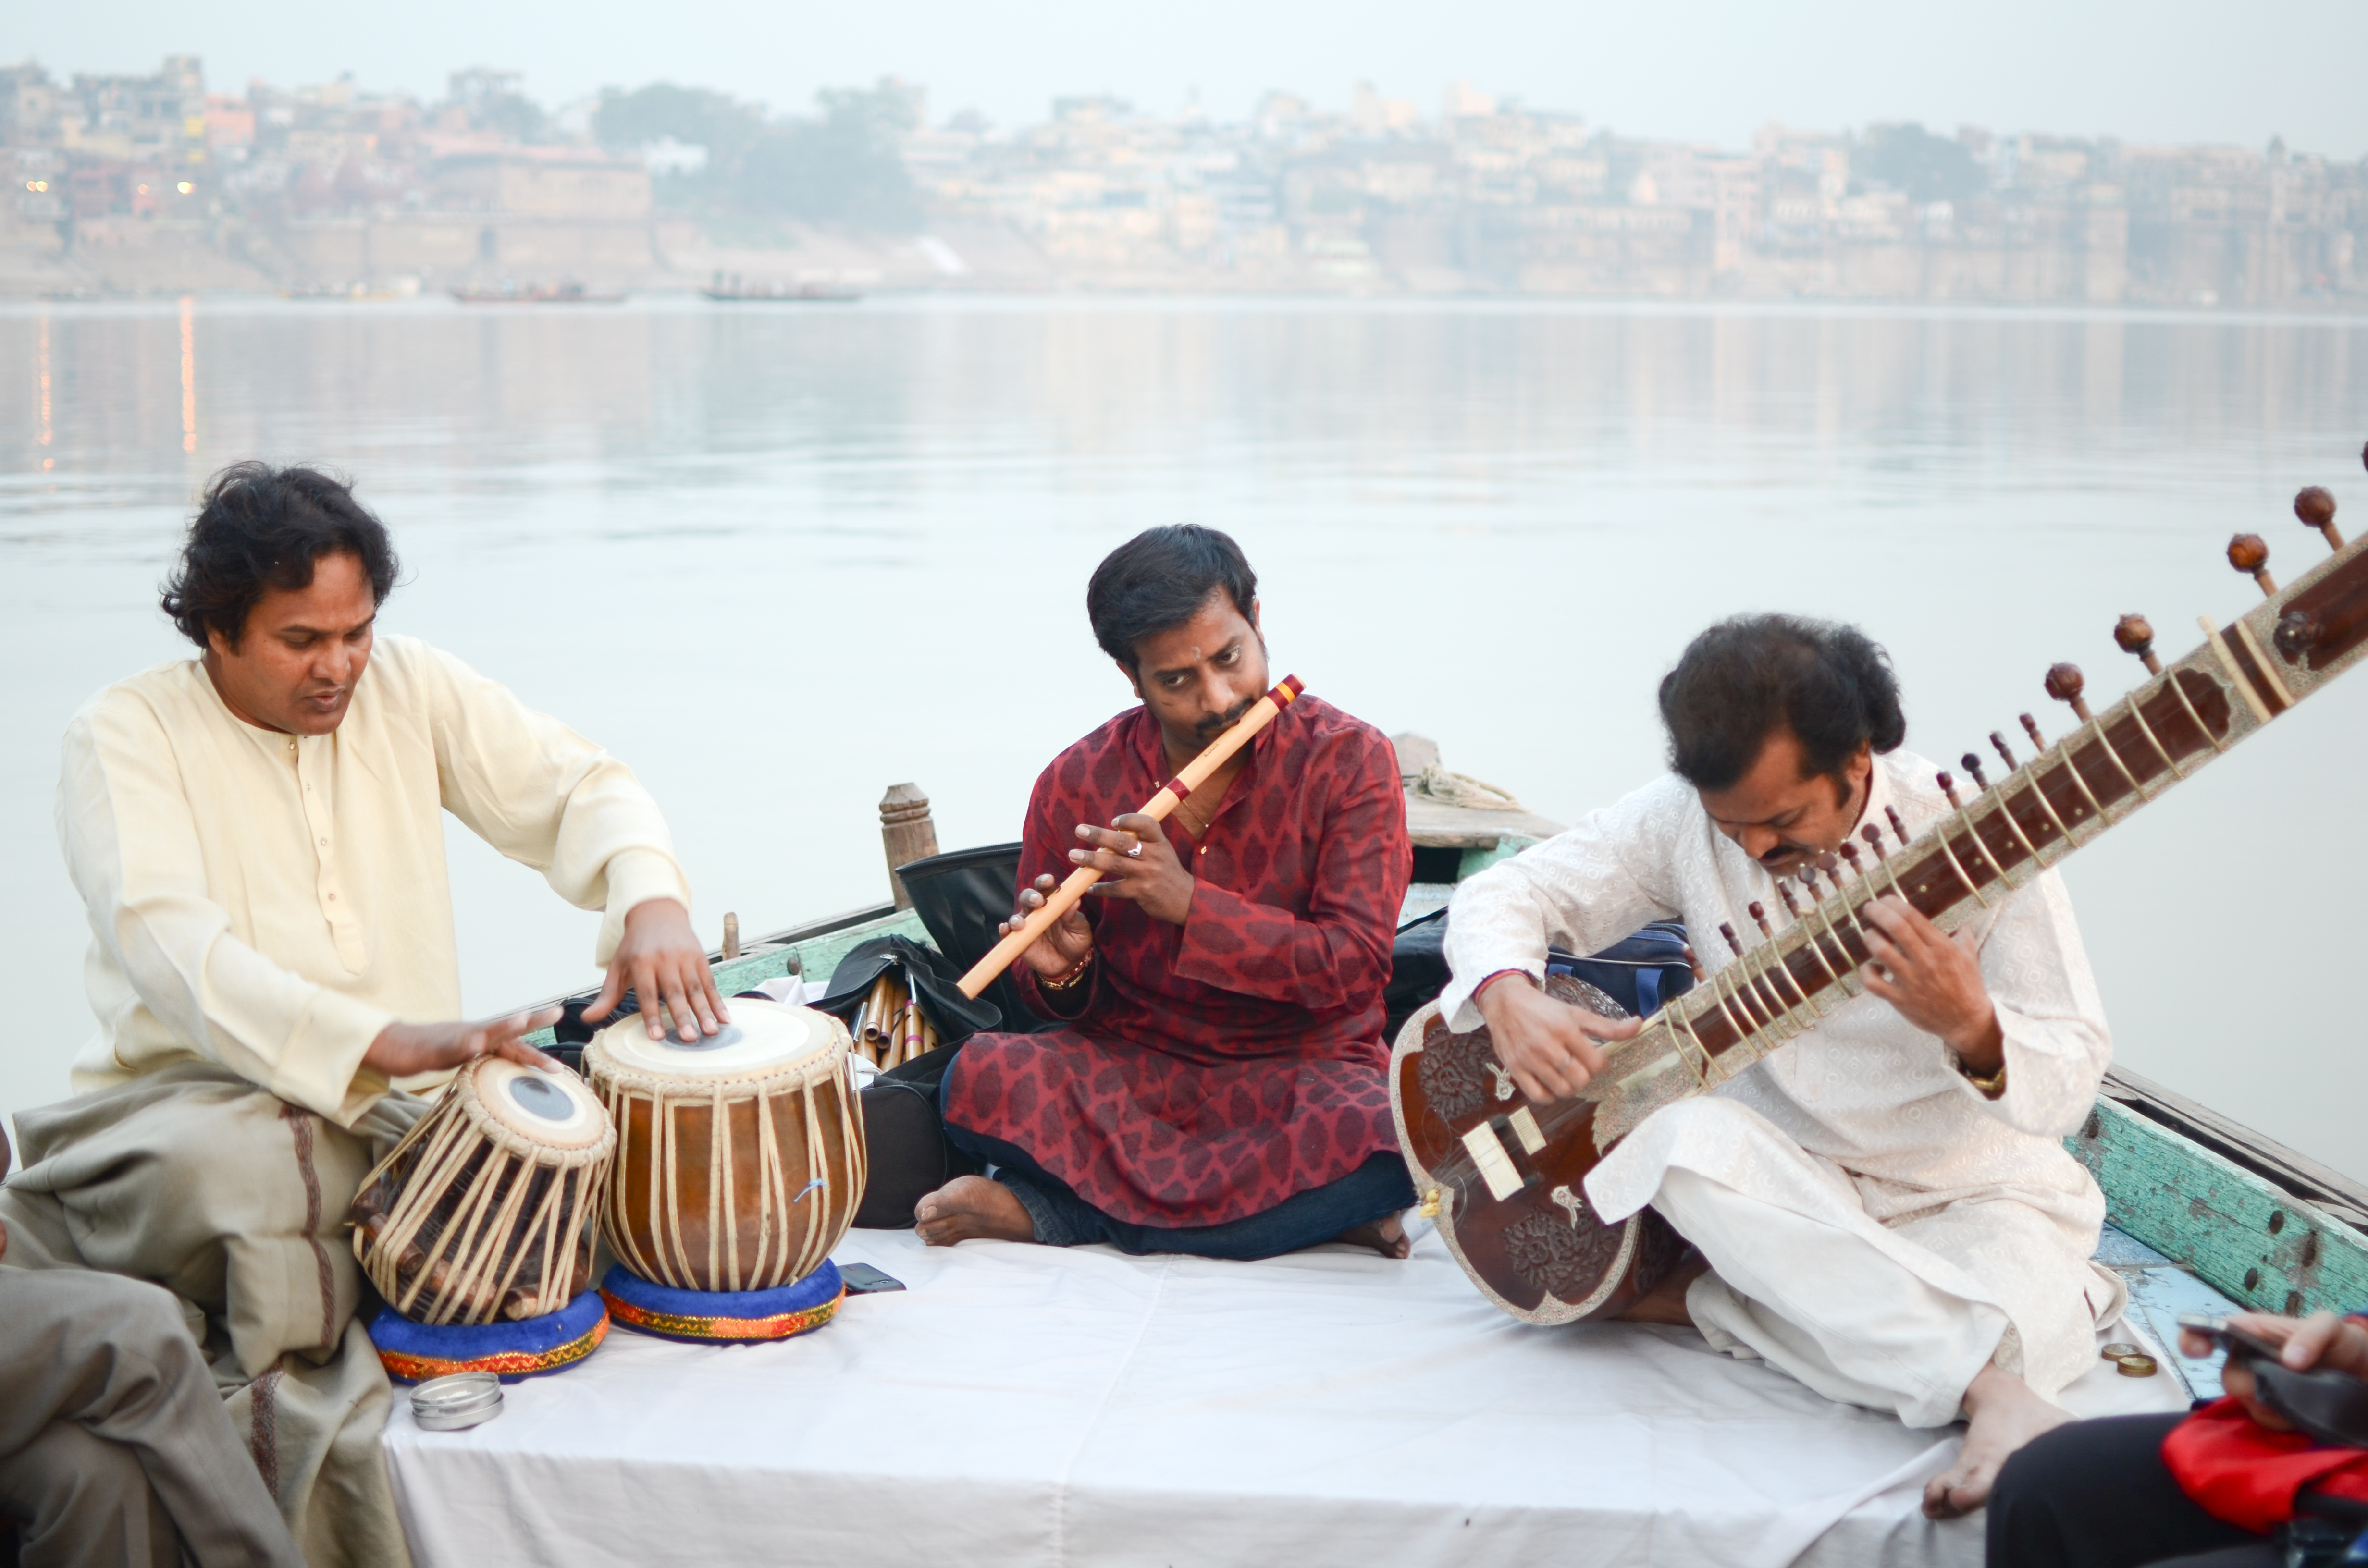 File:Indian culture music.jpg - Wikimedia Commons